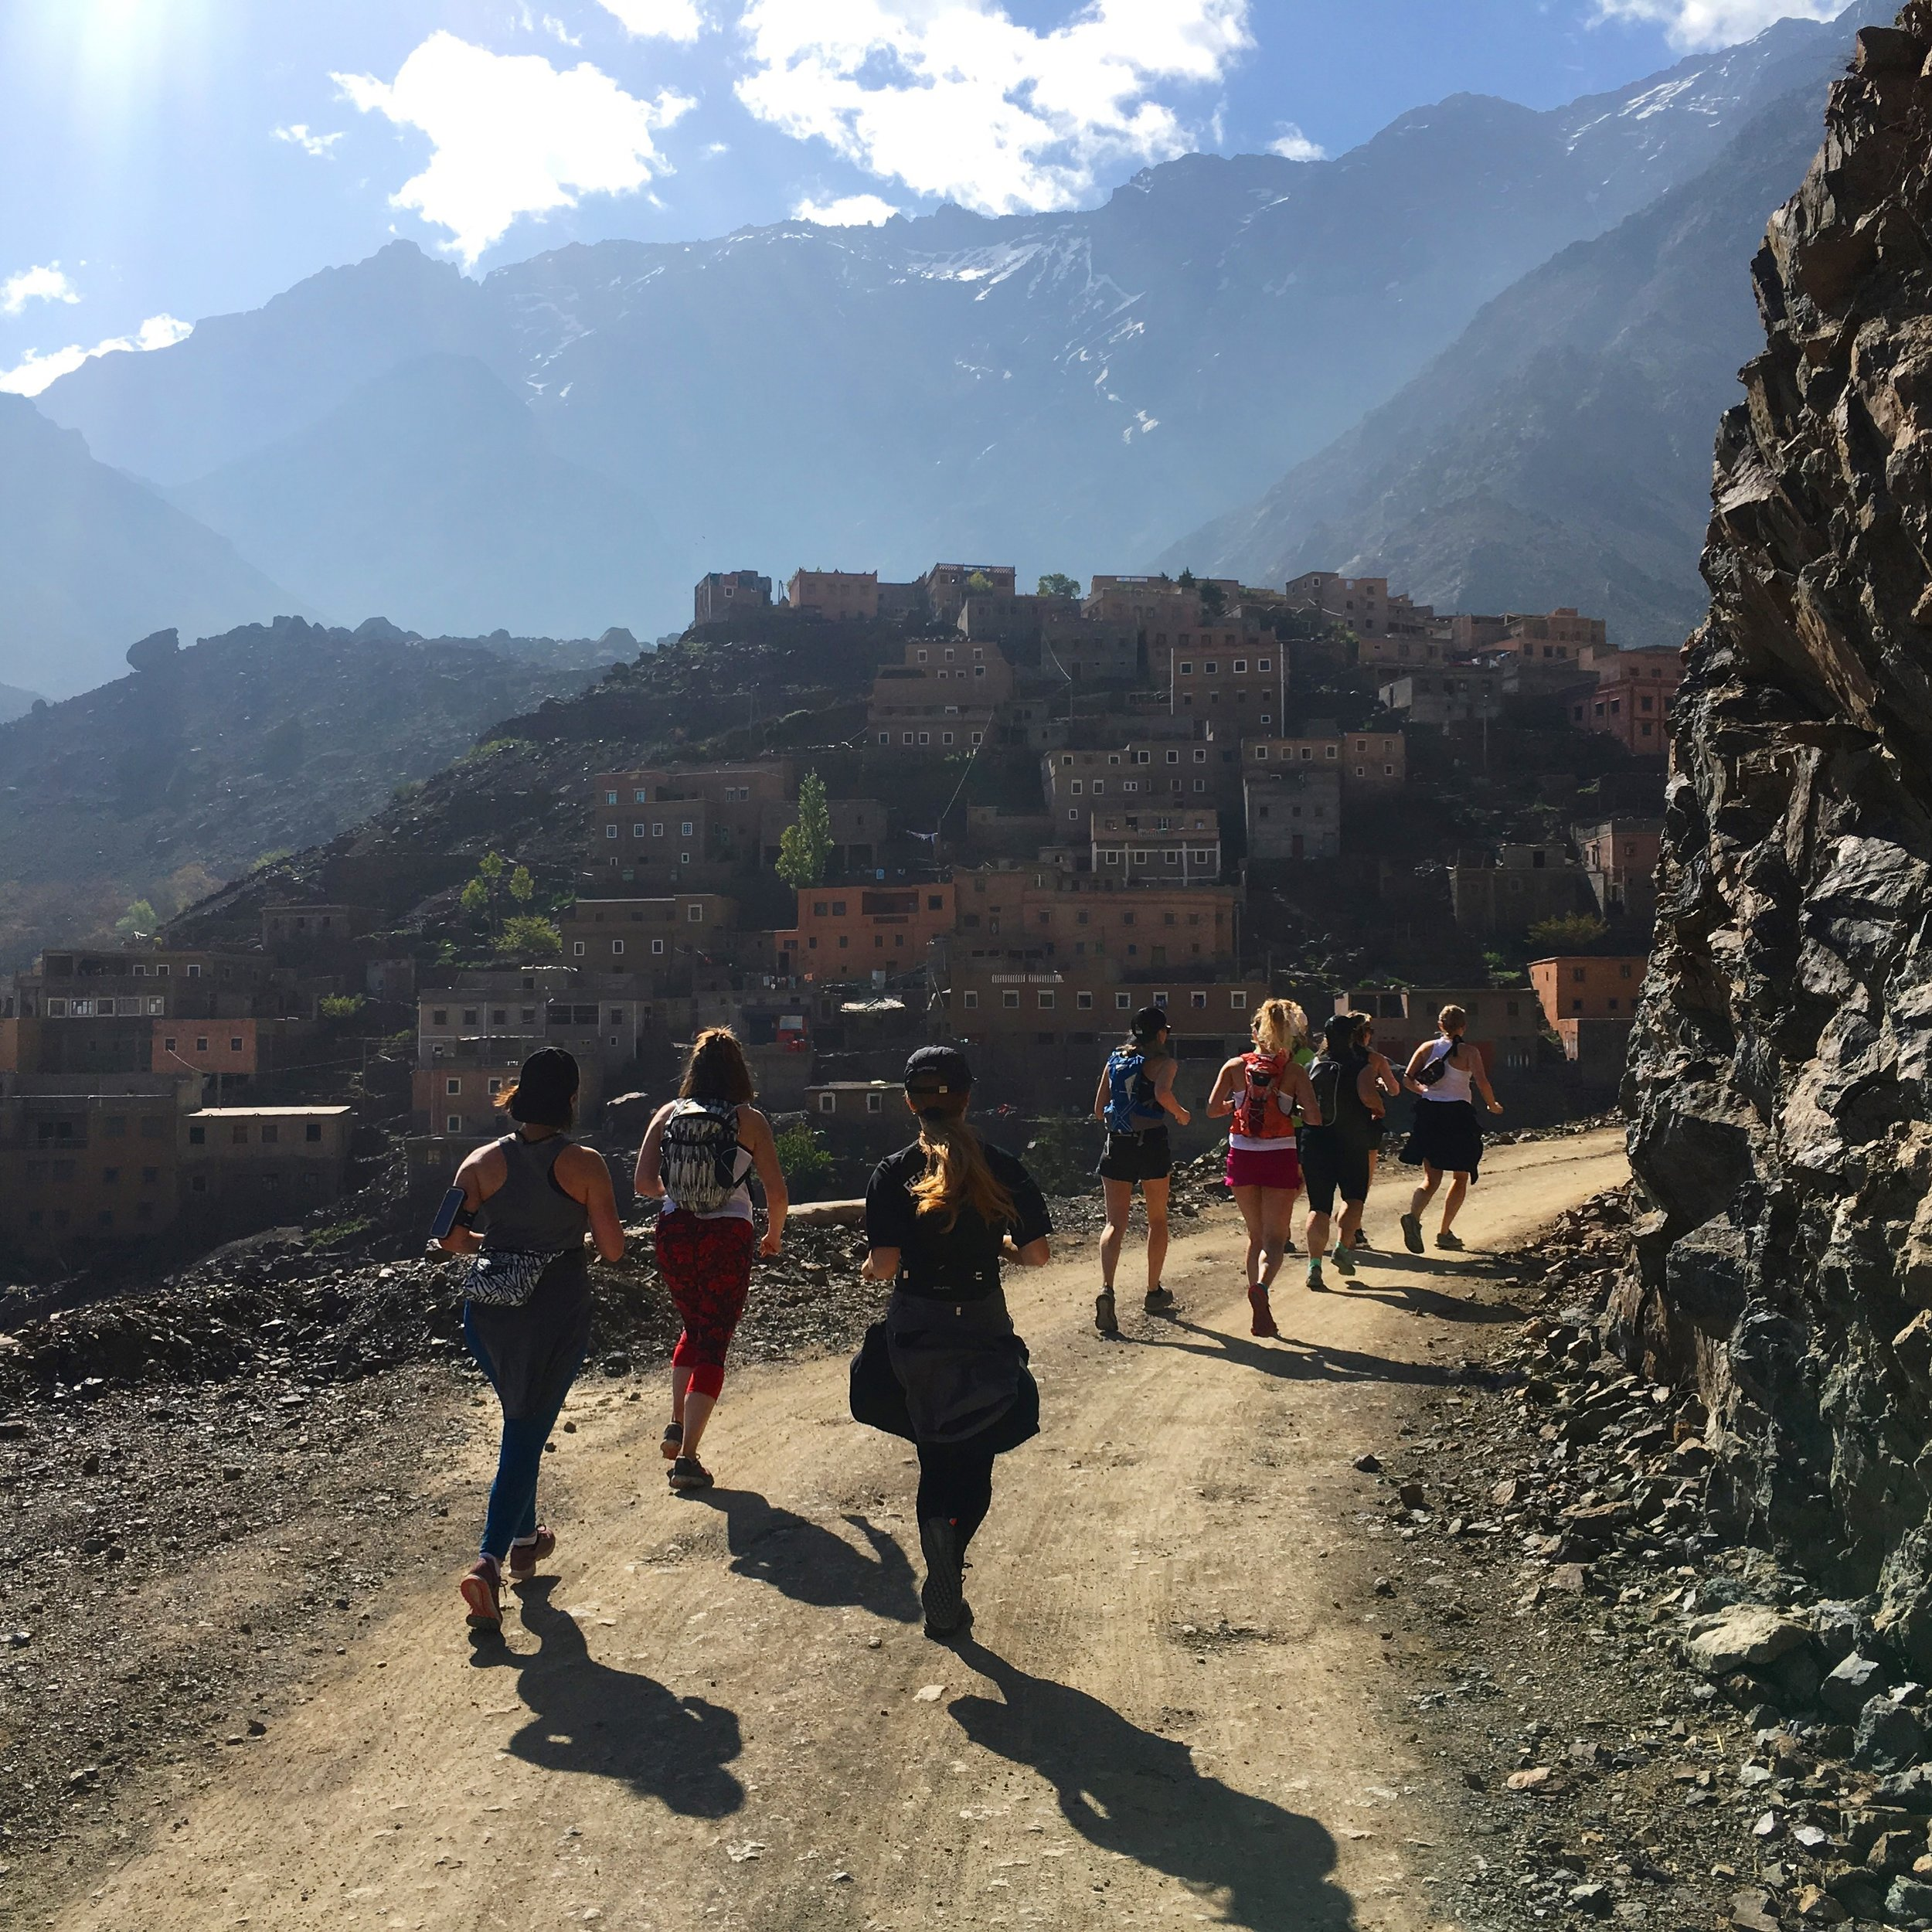 Run - Mountain trails straight from your front door take us through local berber villages with spectacular views of the high atlas mountains. All abilities welcome.